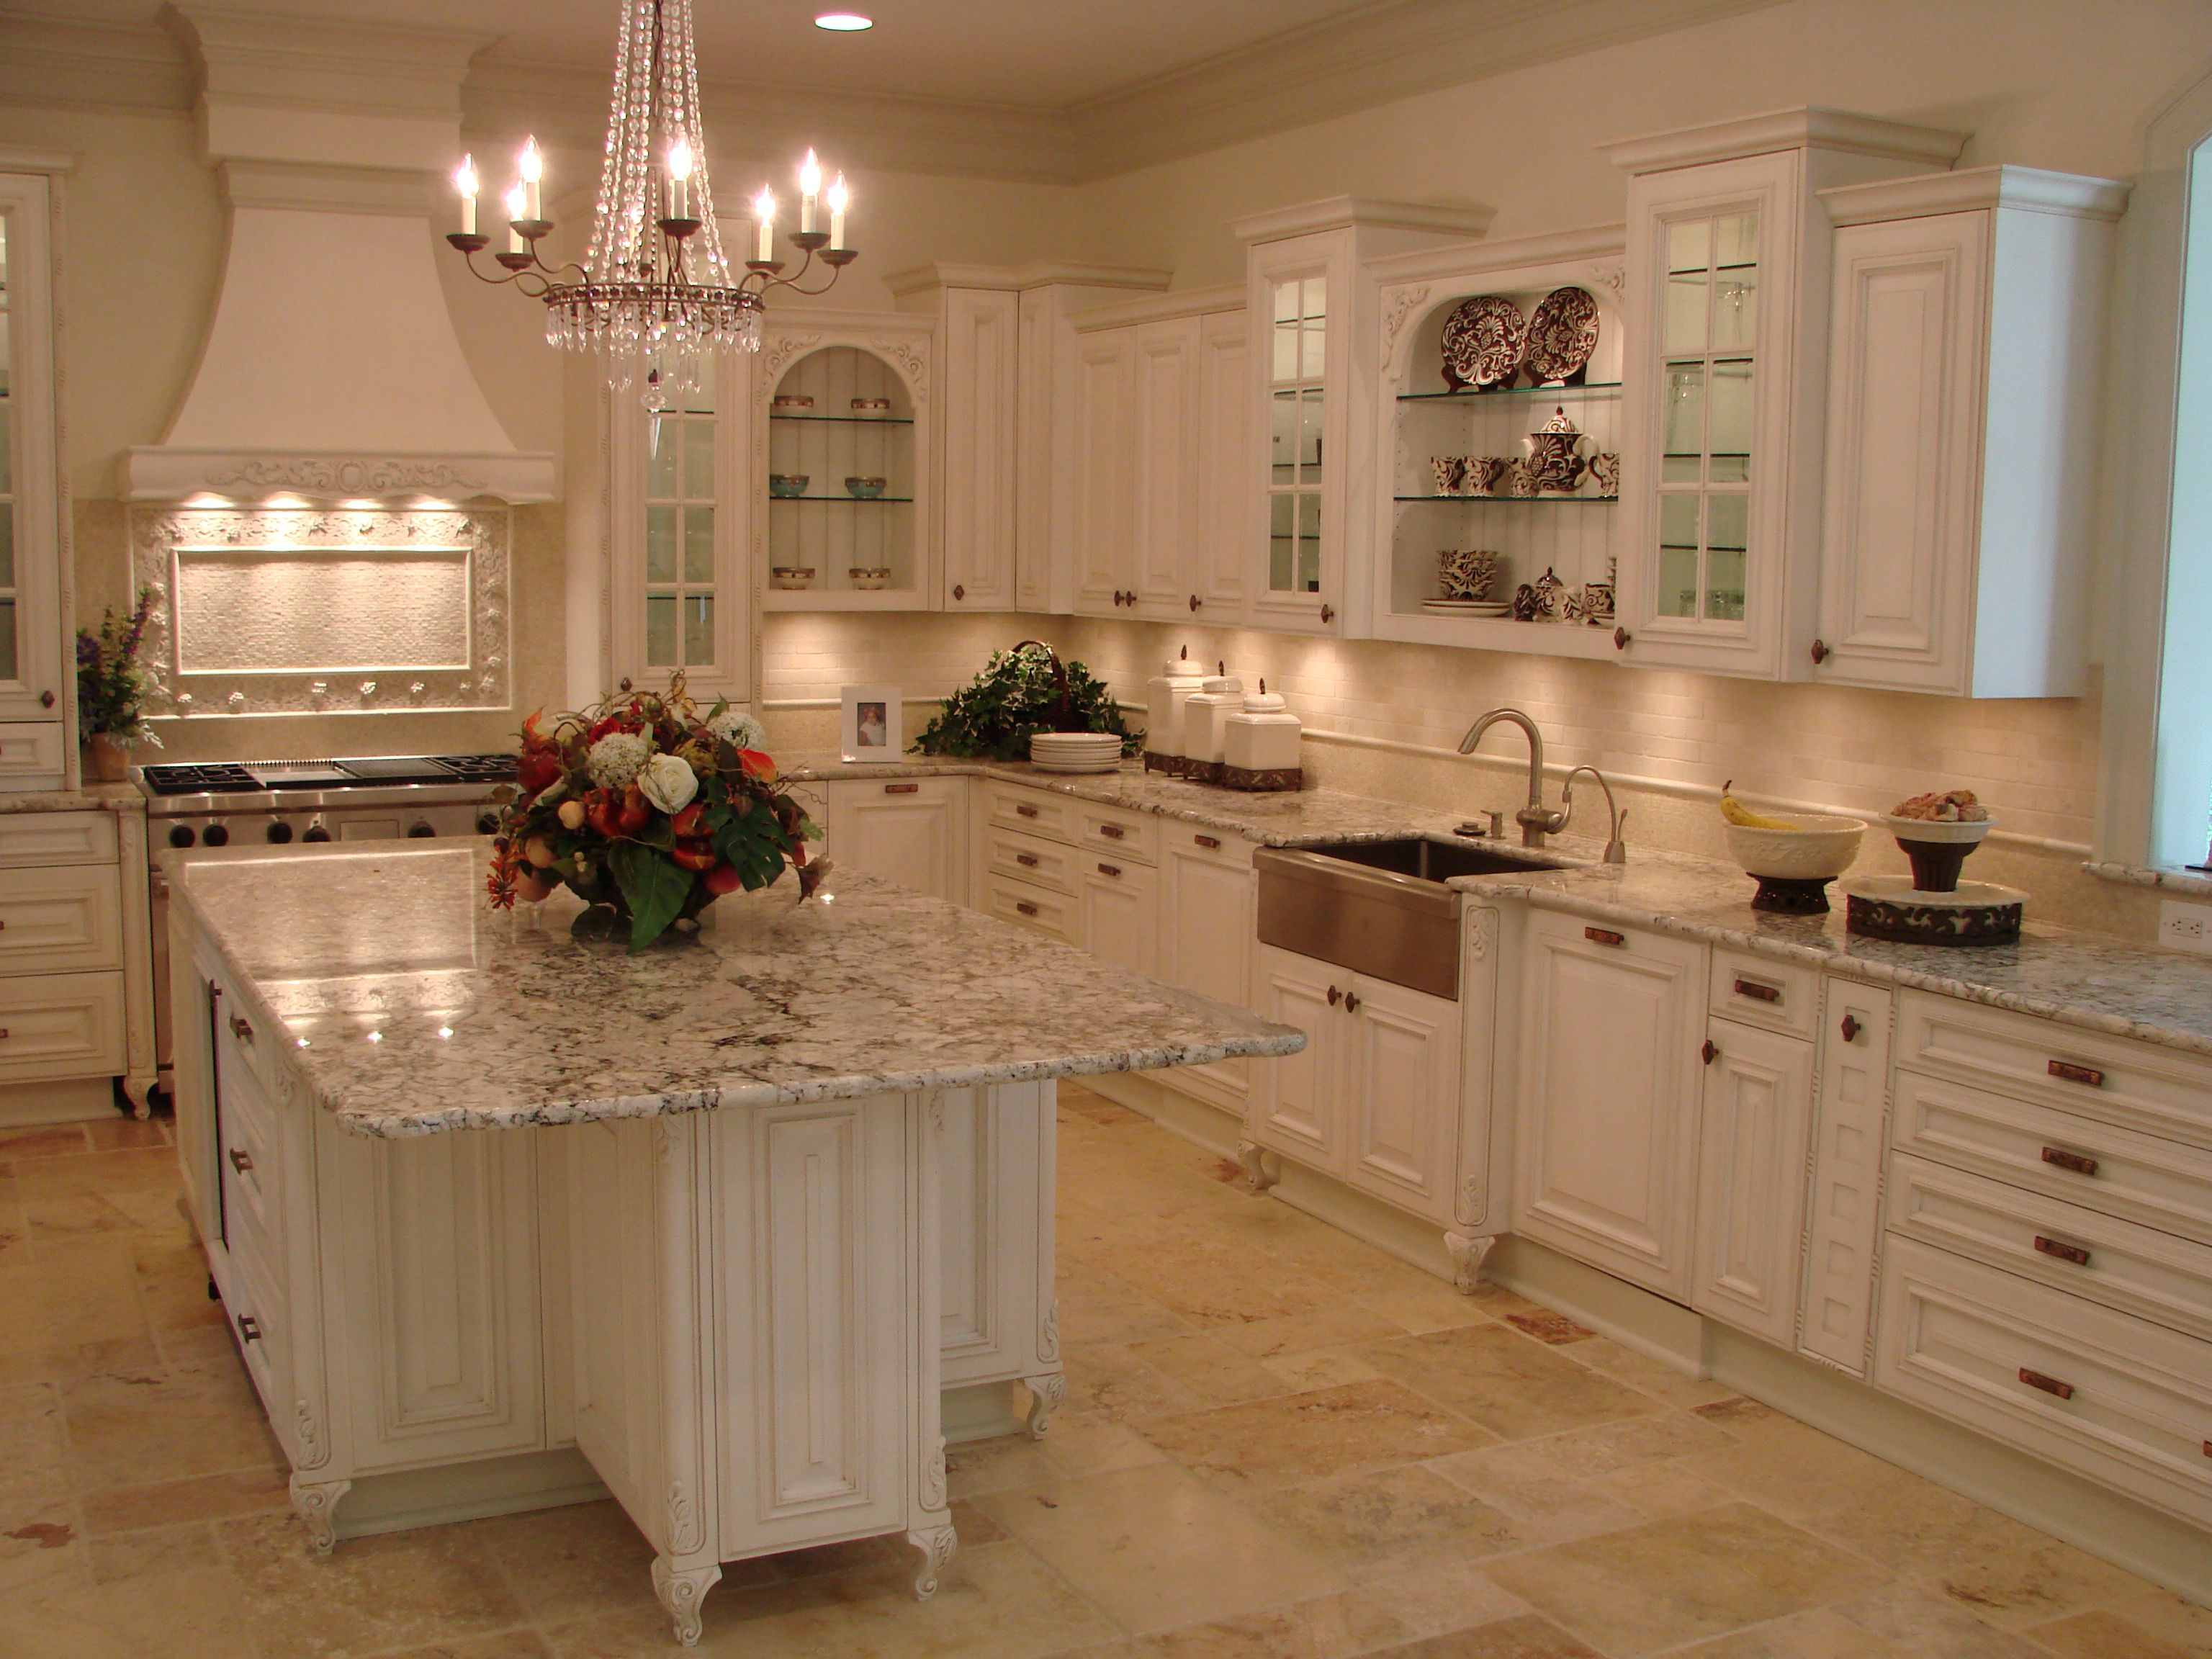 Traditional Kitchens With White Cabinets Traditional Kitchen Design With White Cabinets And Marble